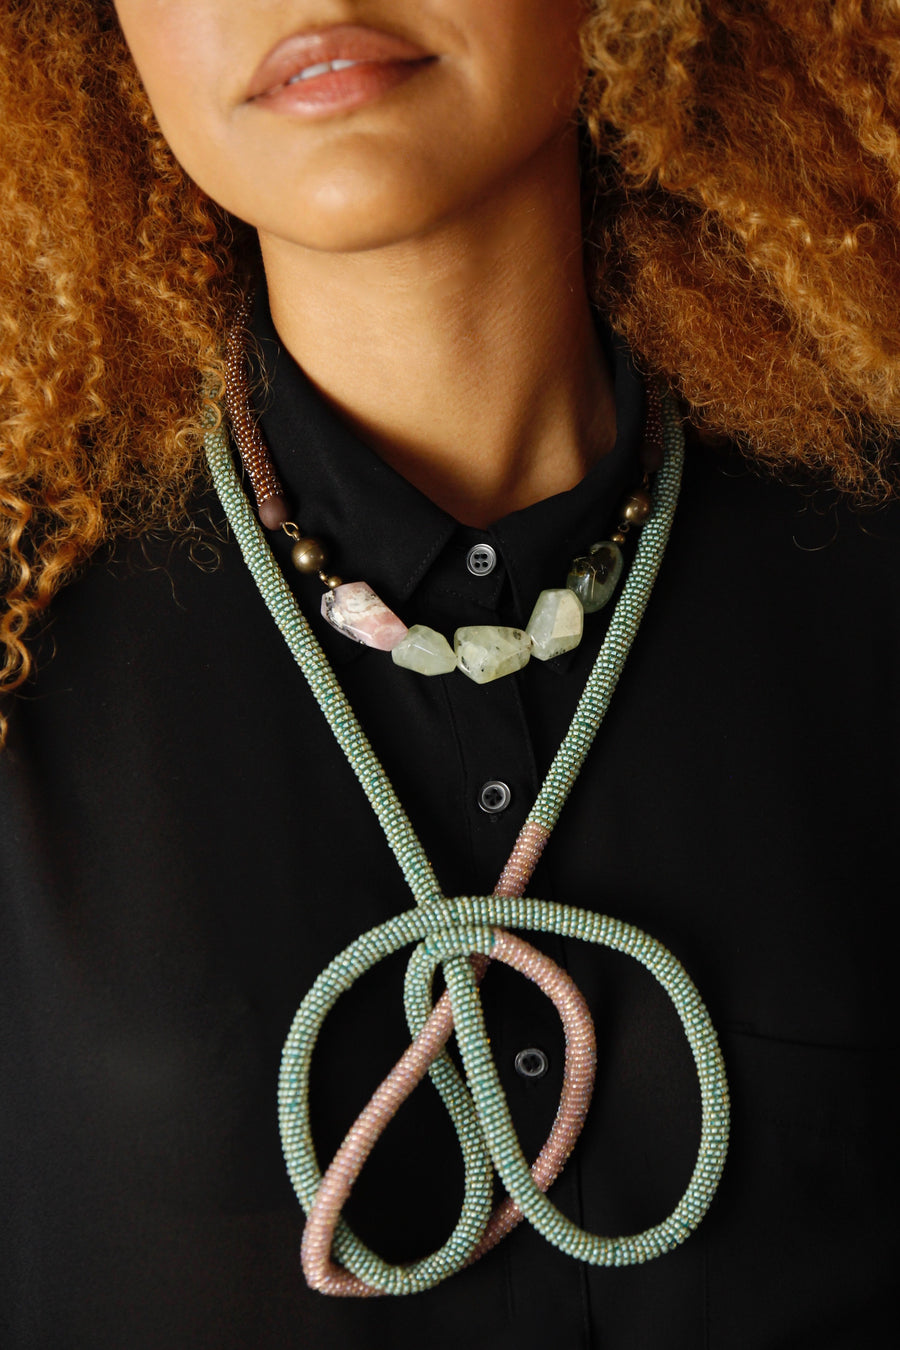 Loop necklace in teal-lilac duo